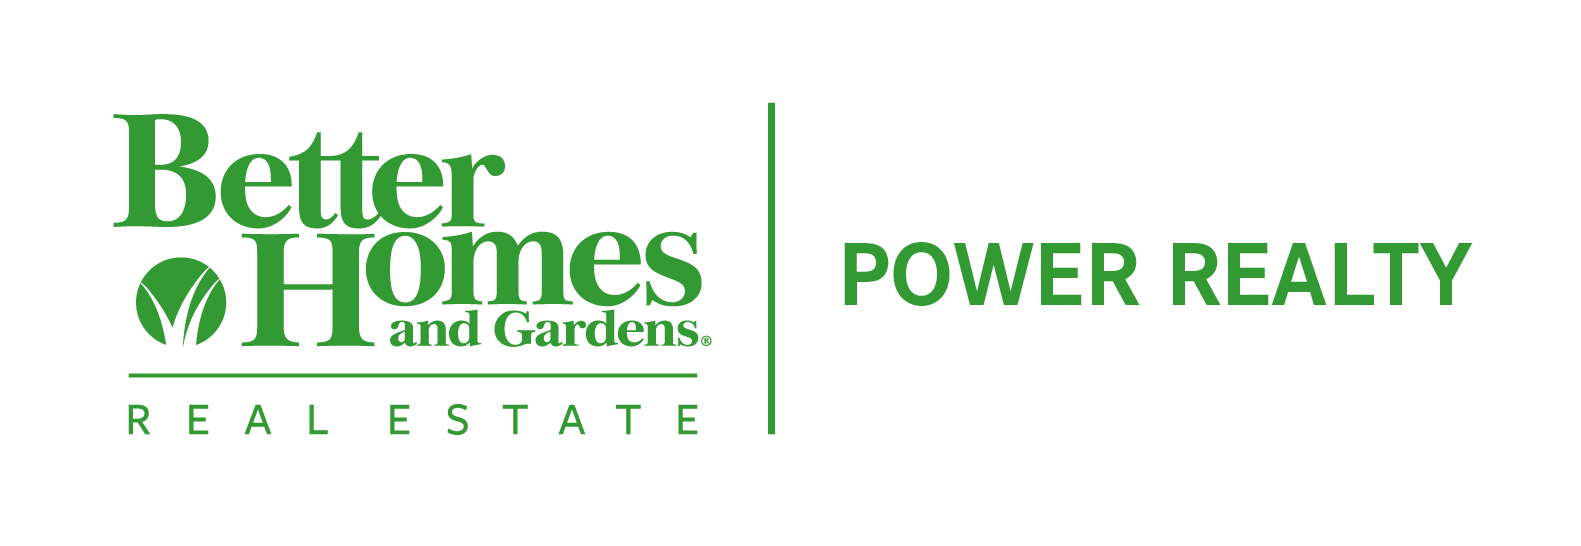 Great Better Homes And Gardens Real Estate Expands Franchise Network With  Brokerage In Southeastern Wisconsin Market